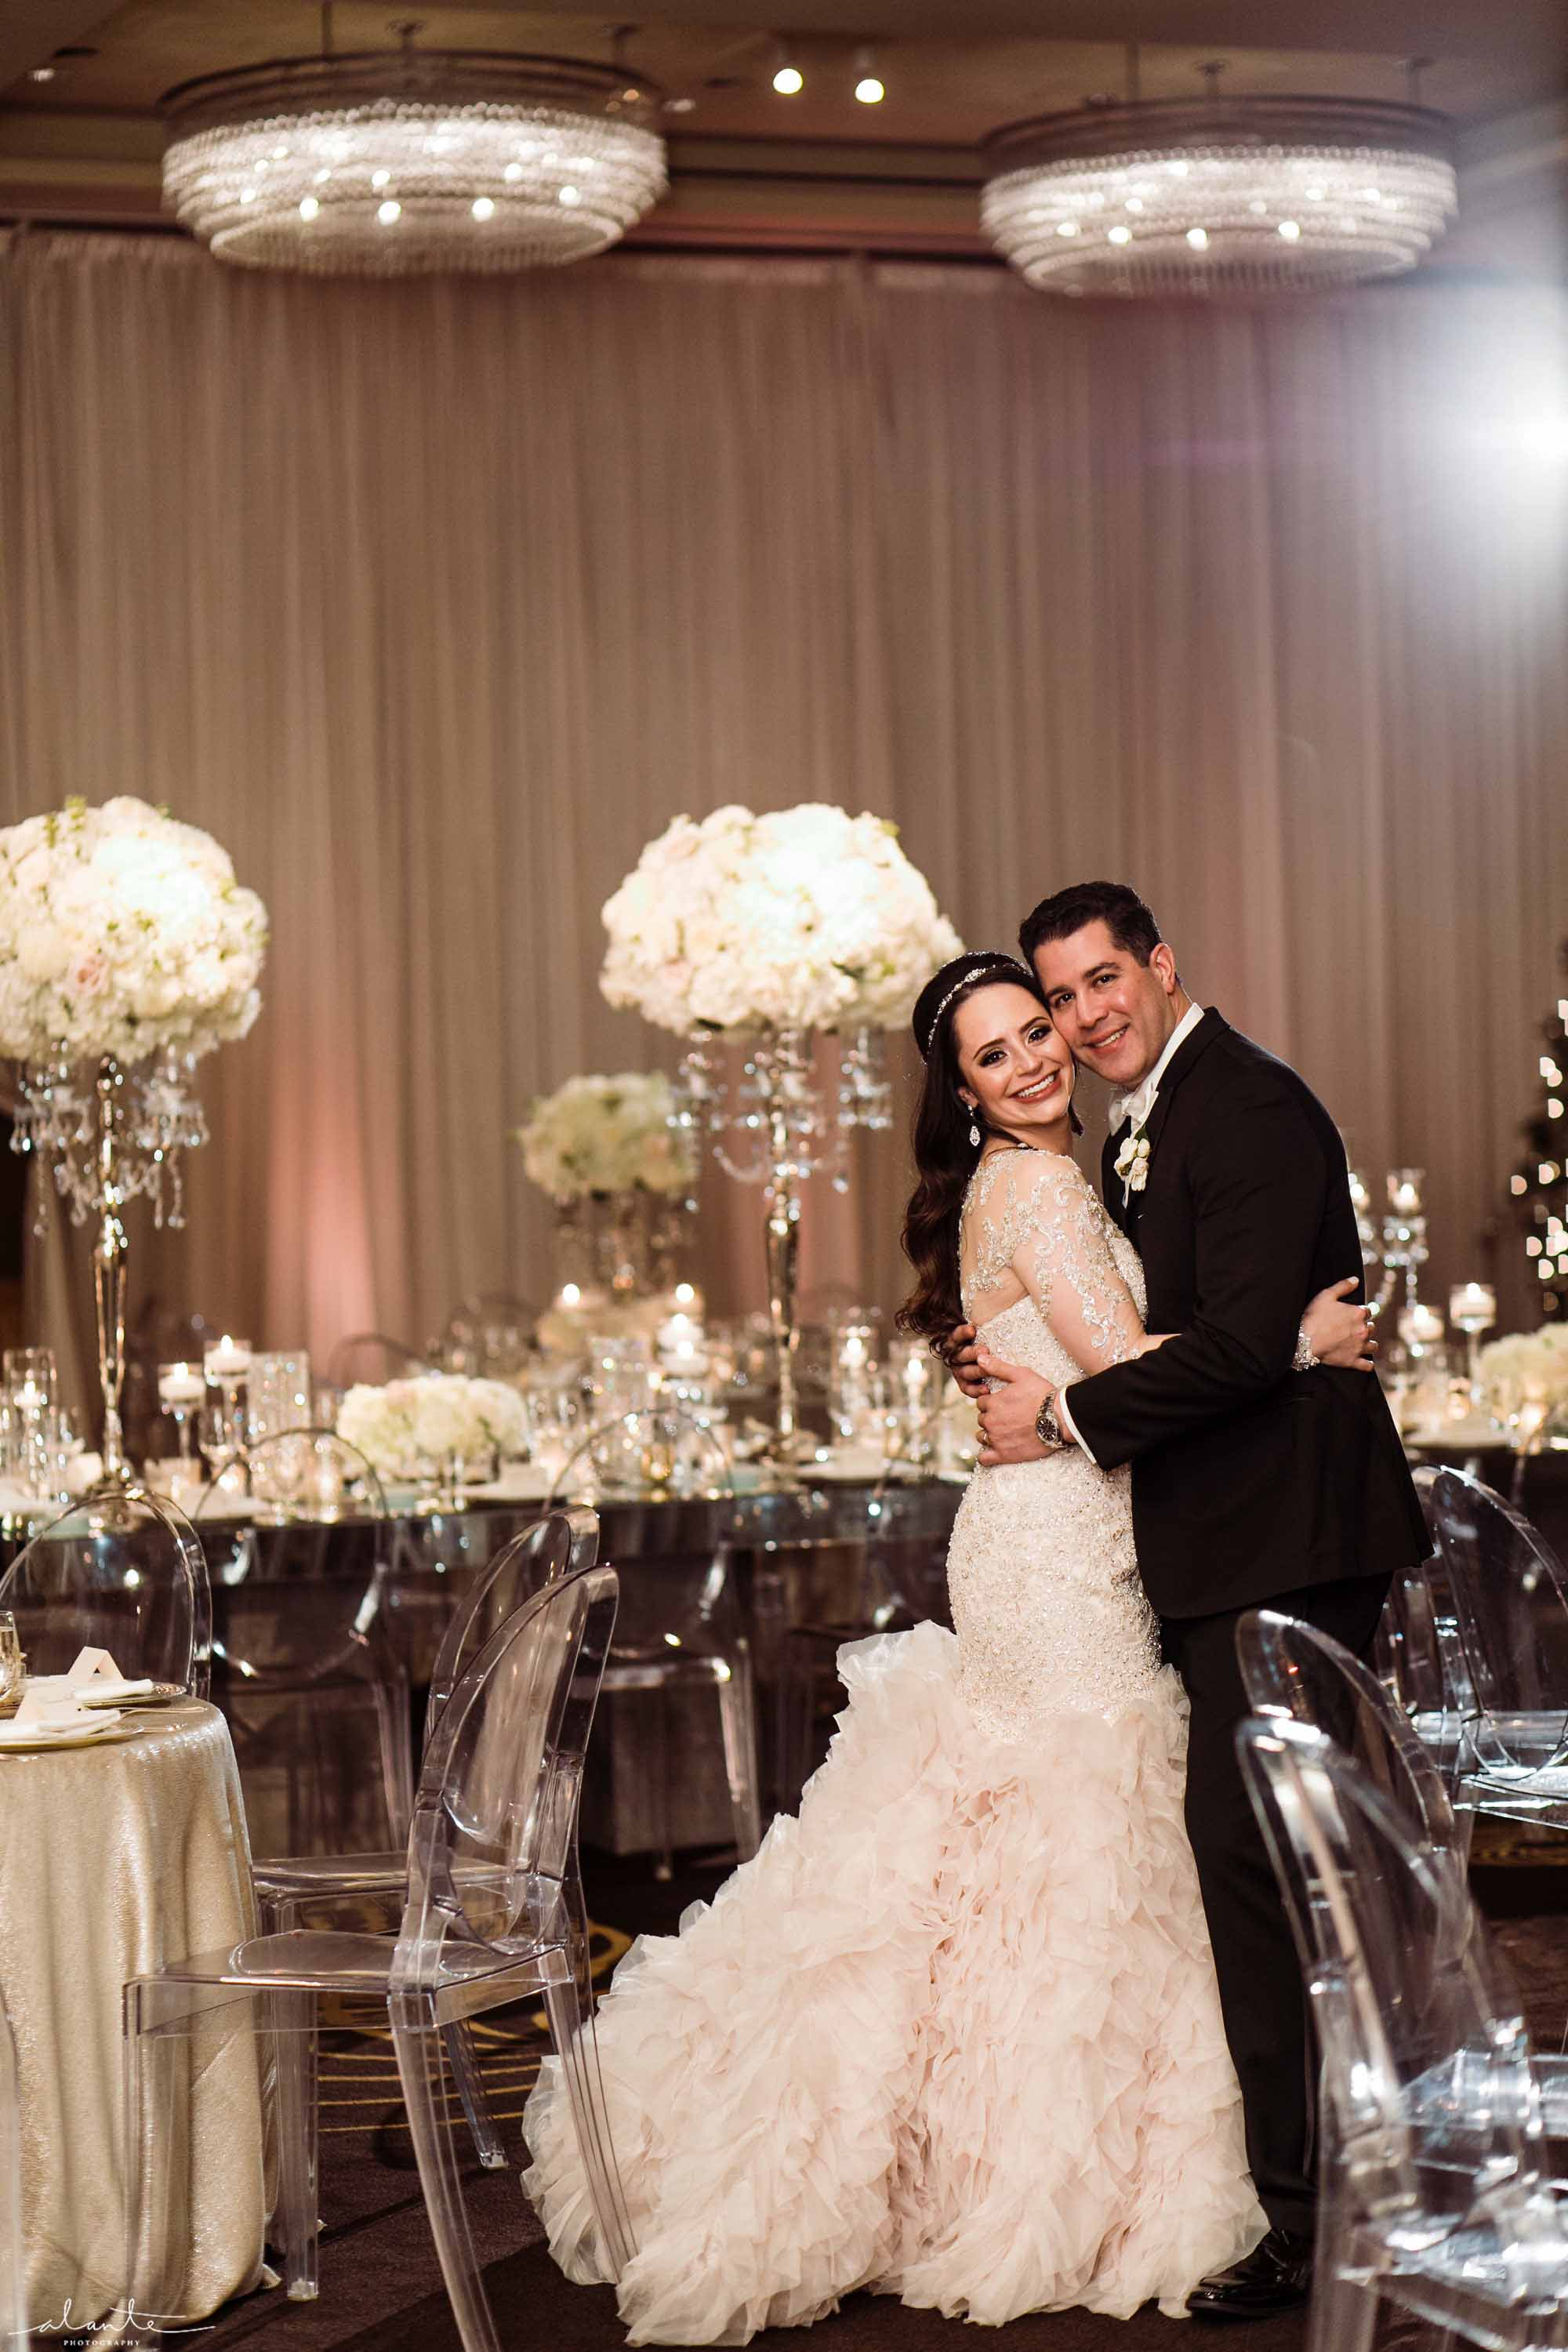 Bride and groom at the gorgeous wedding reception - Luxury Winter Wedding at the Four Seasons by Flora Nova Design Seattle